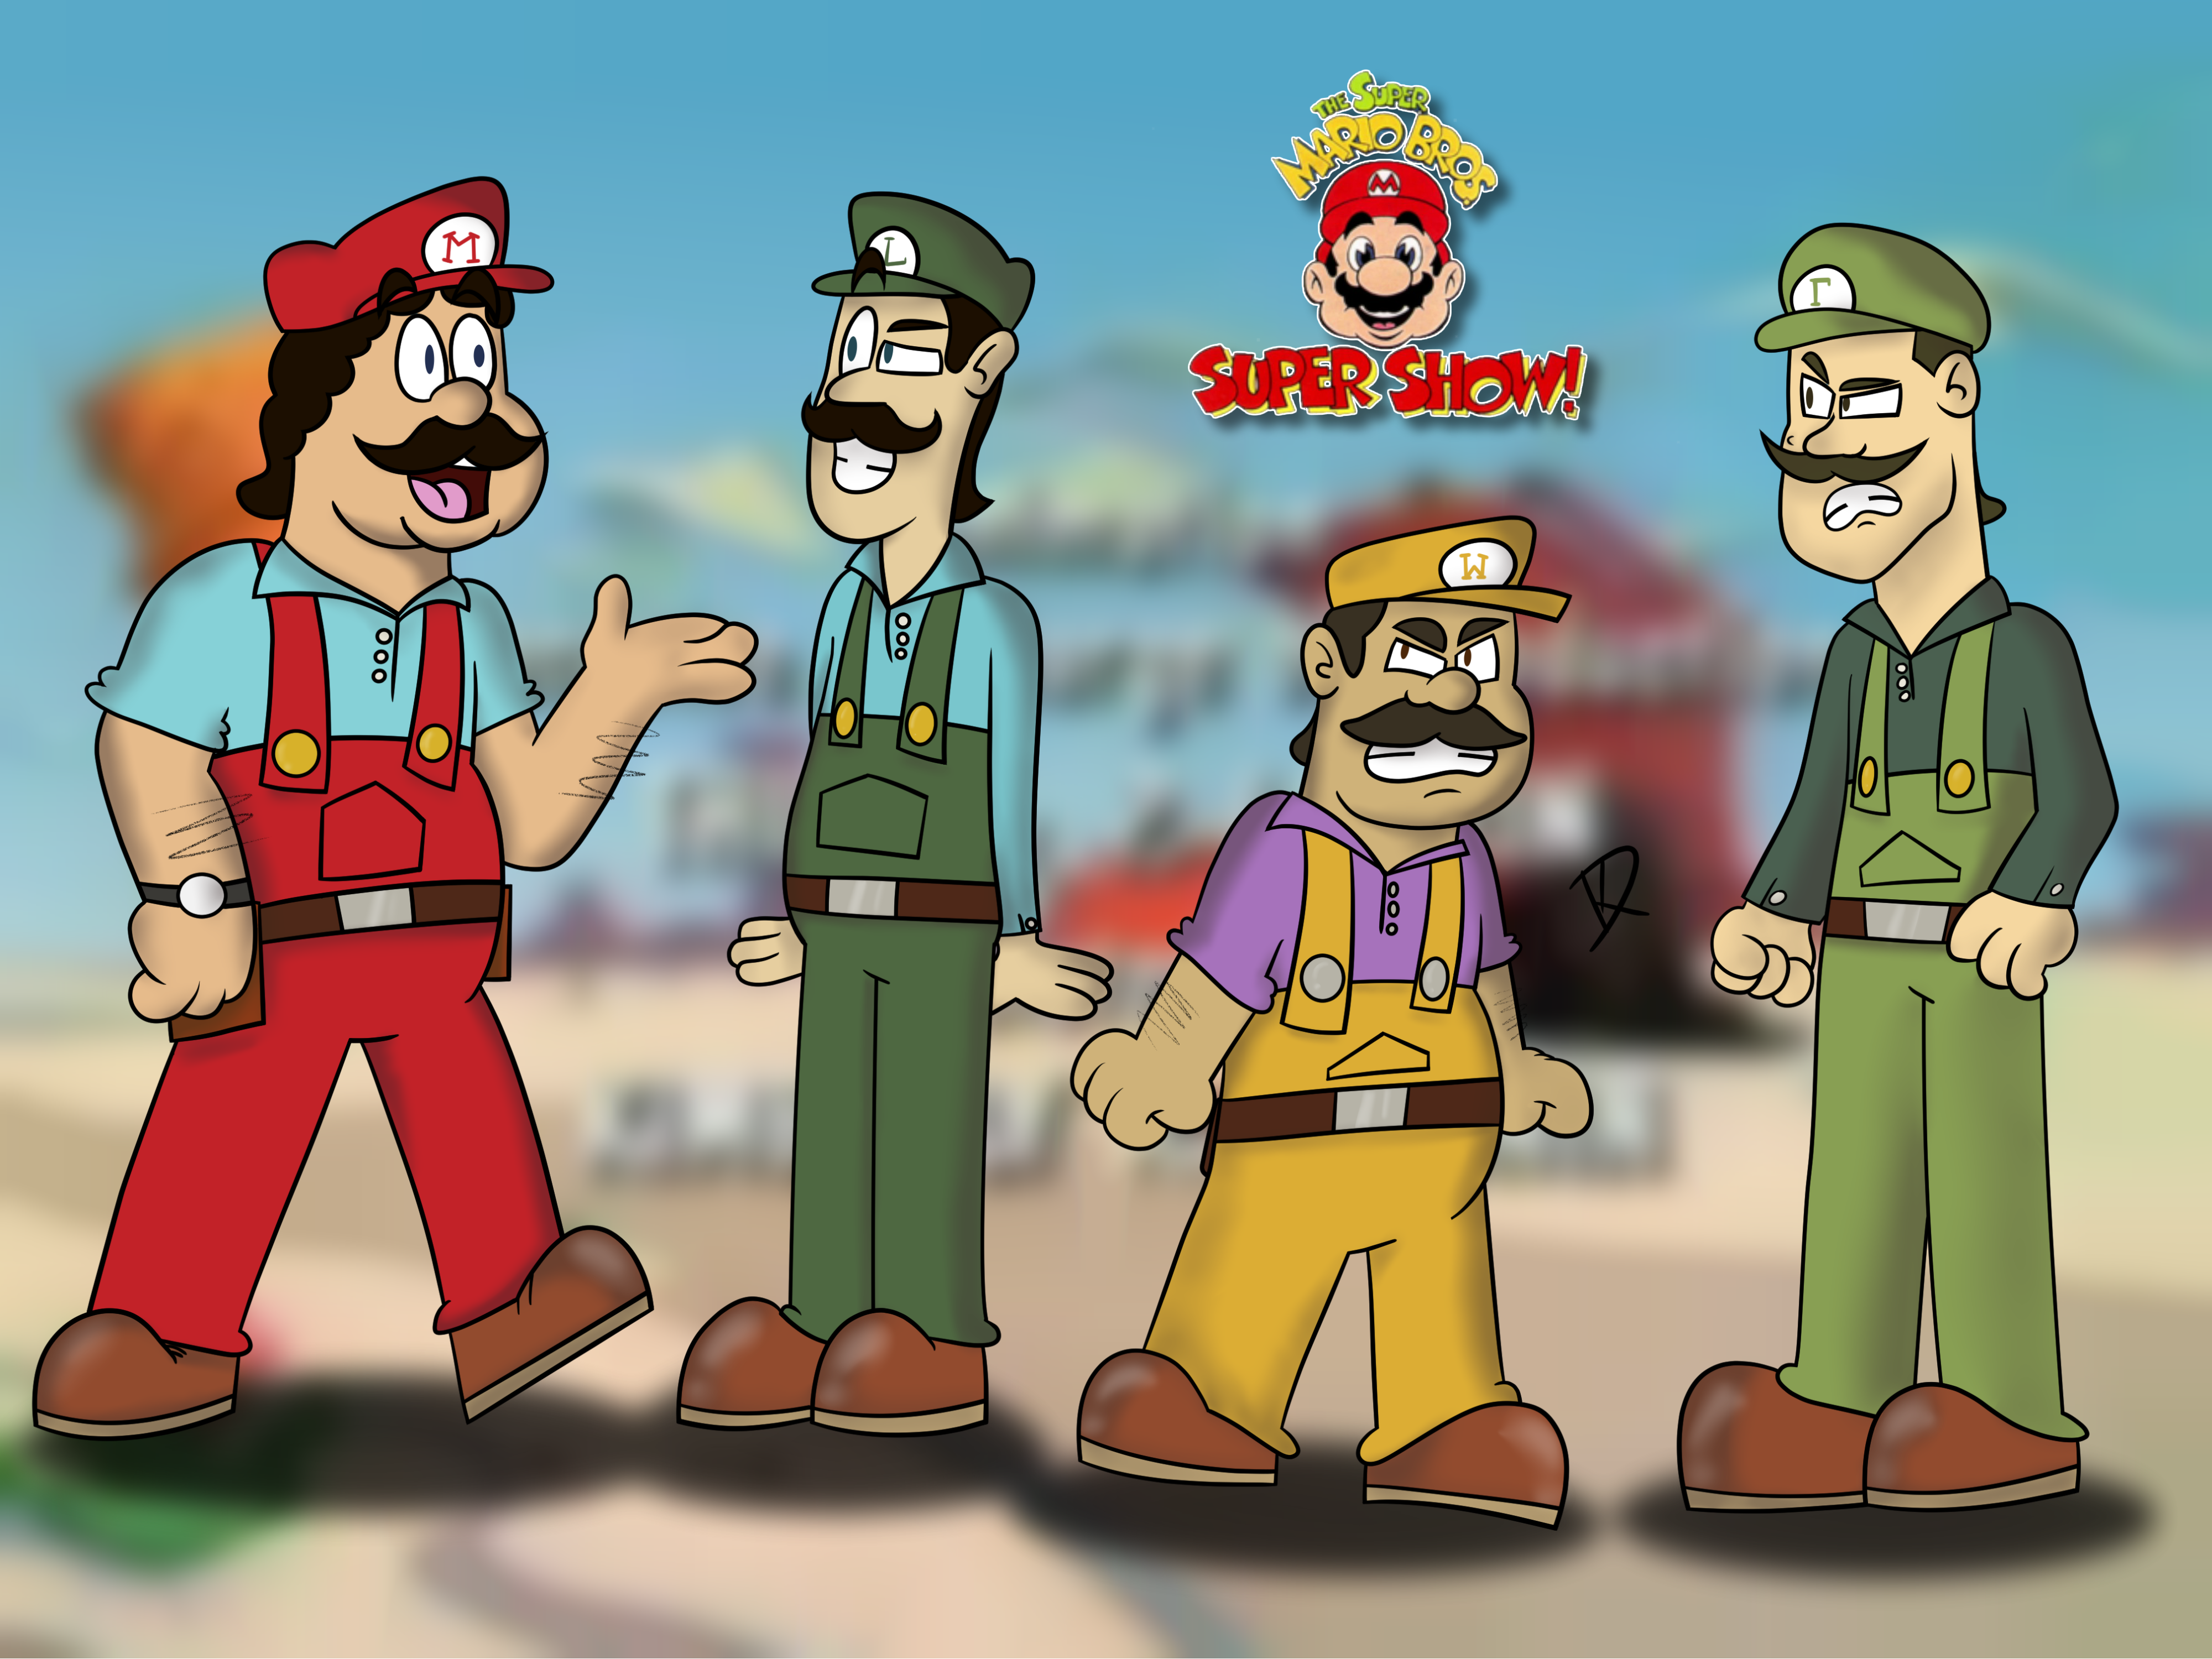 Super Mario Brothers Super Show Live Action By